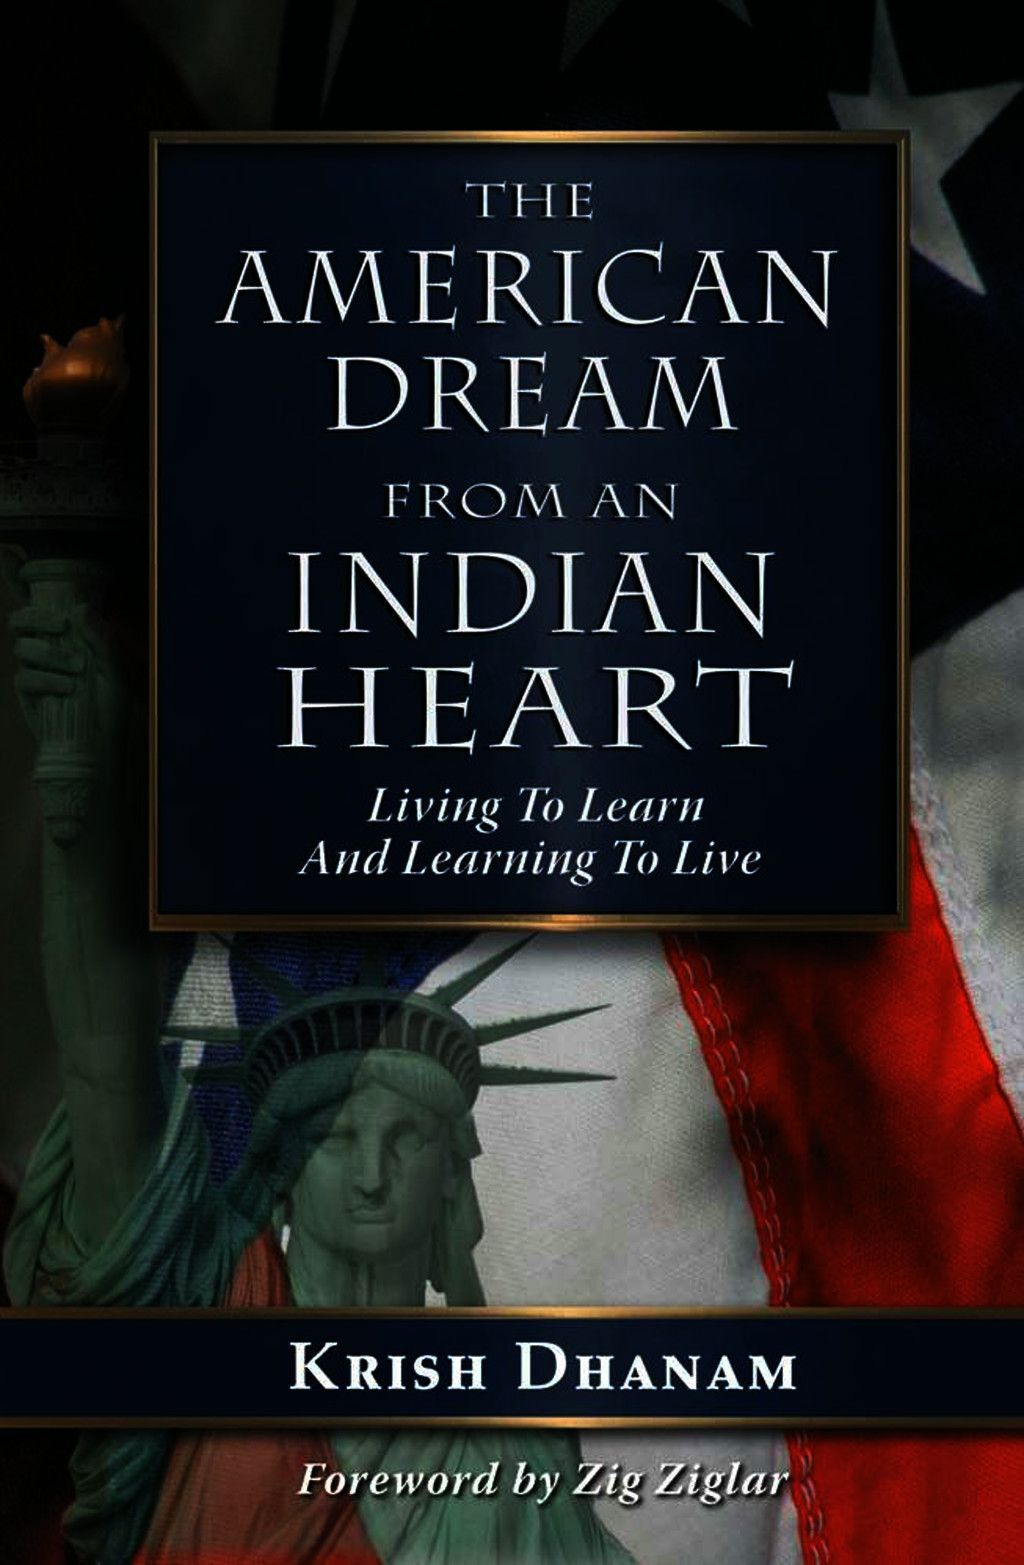 The American Dream From An Indian Heart